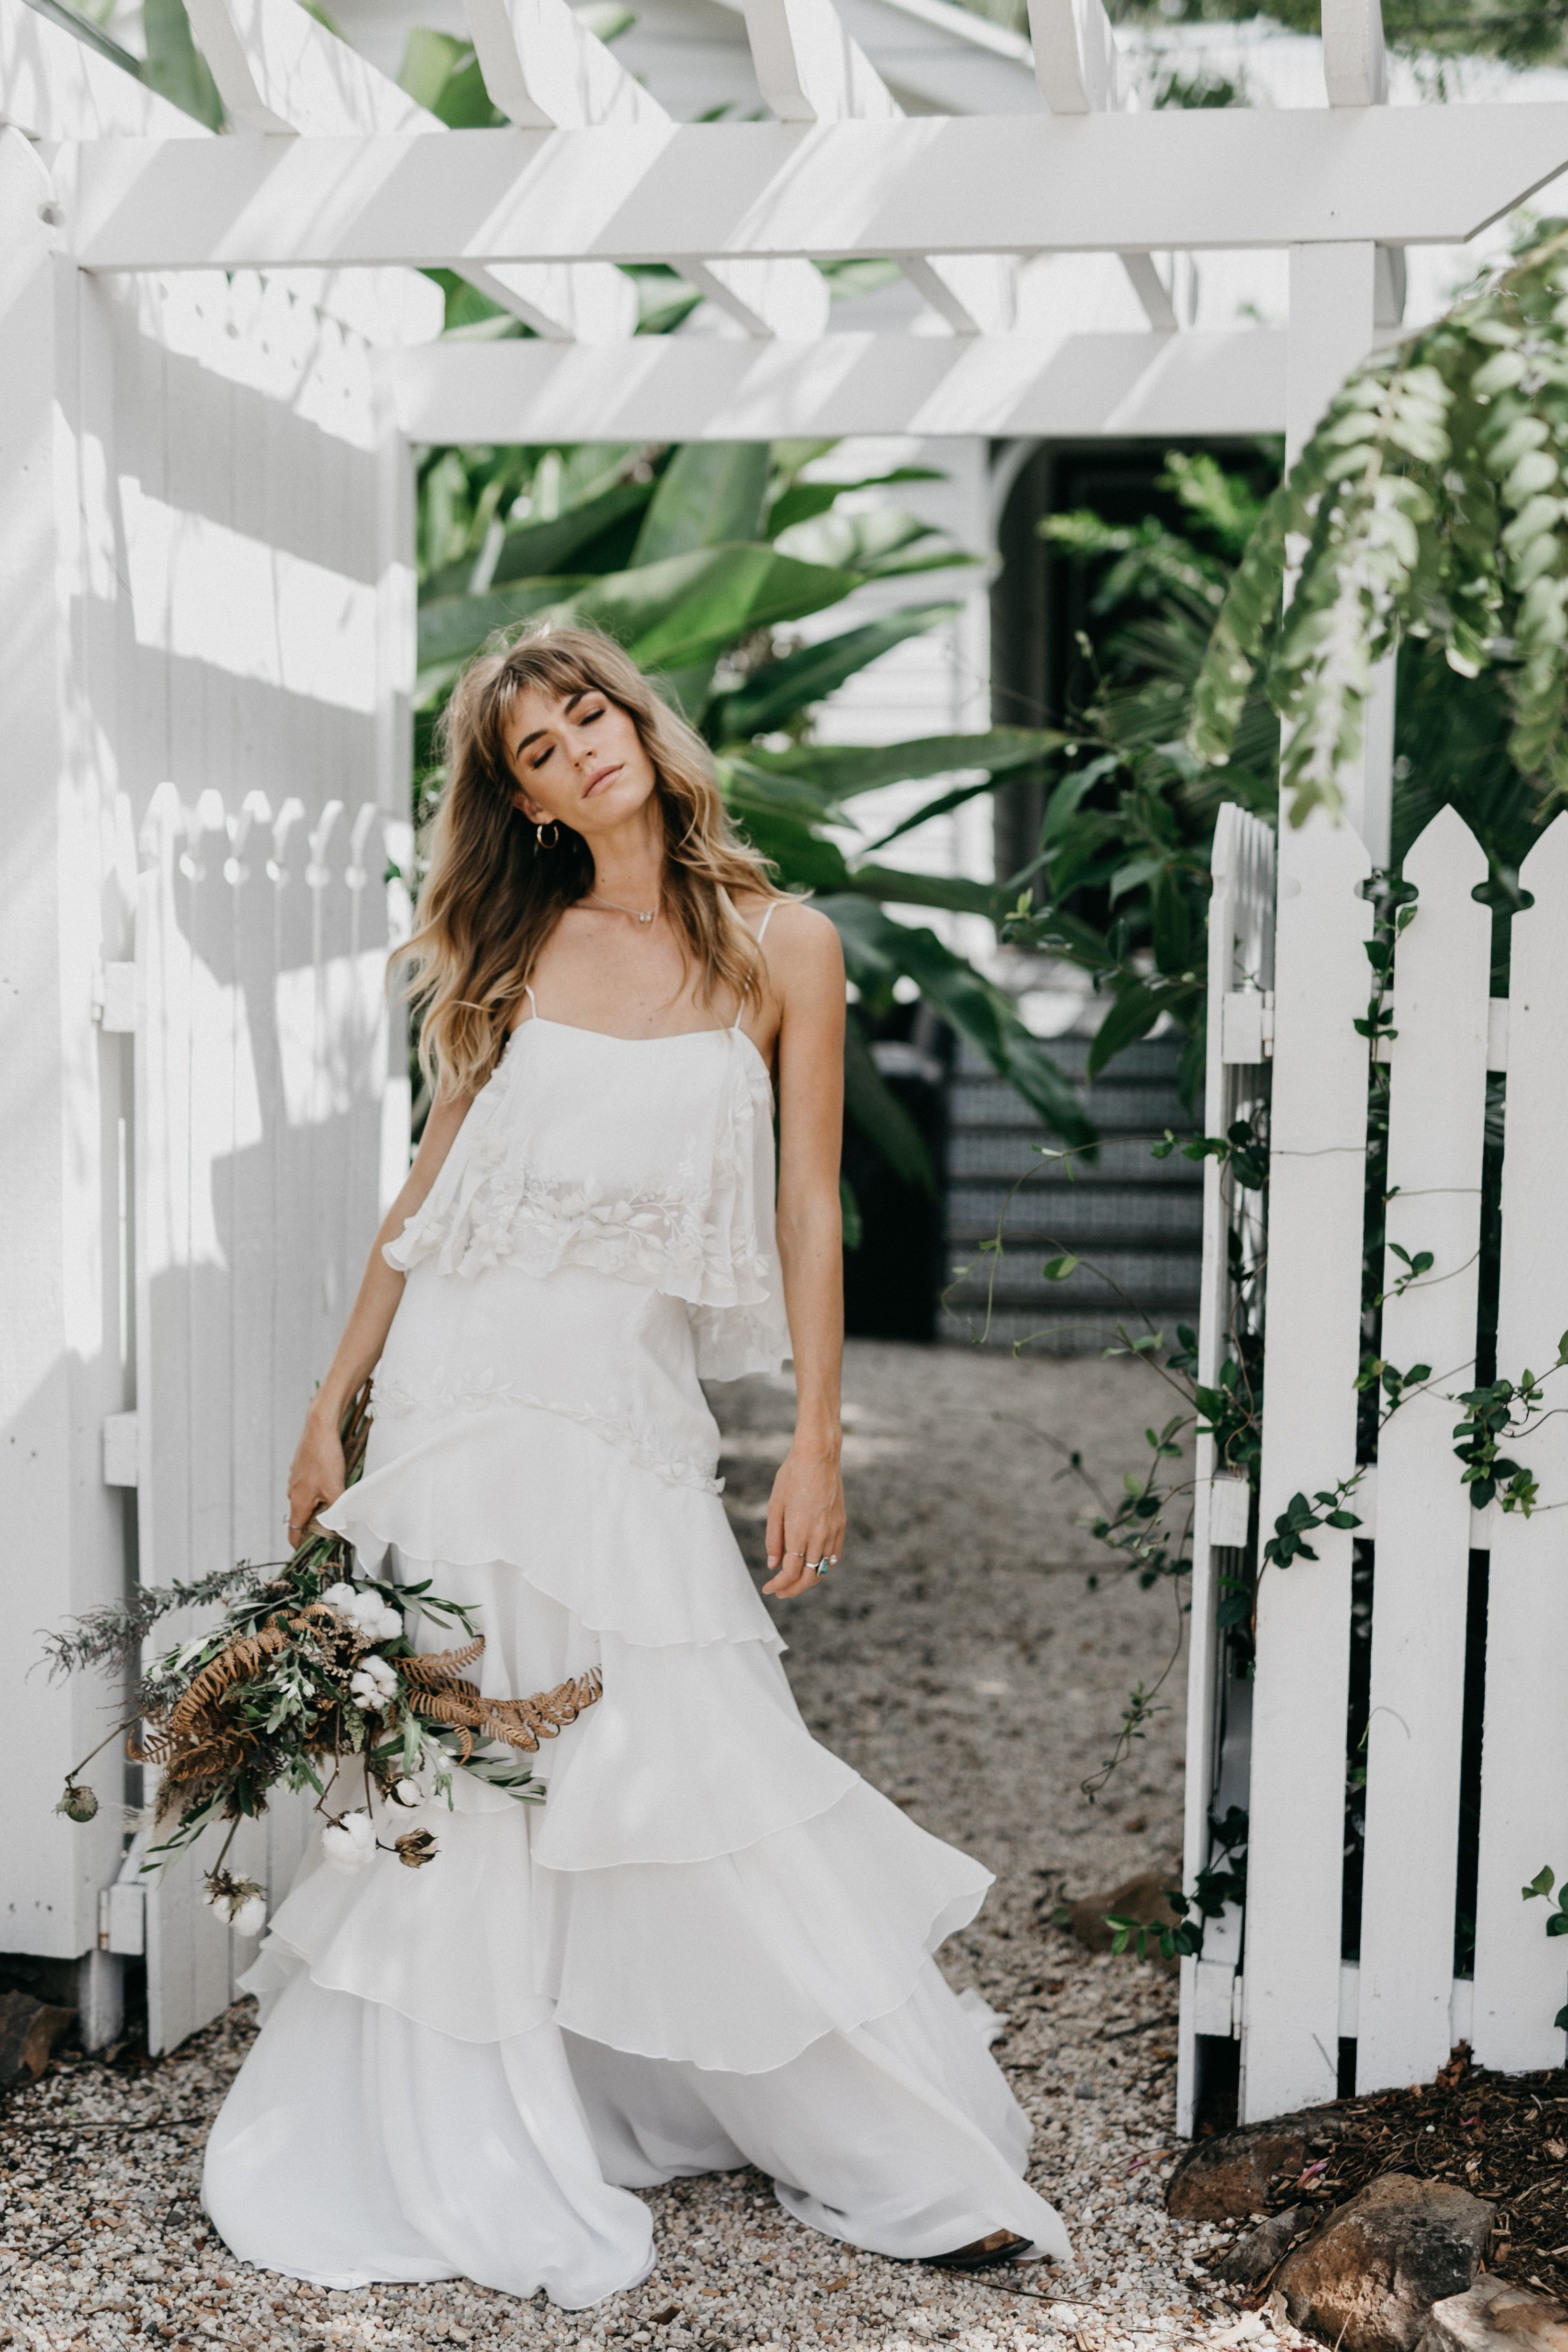 Southern style wedding dresses  SOUTHERN ACCENTS IN STYLE u Hello May  B R I D E  Pinterest